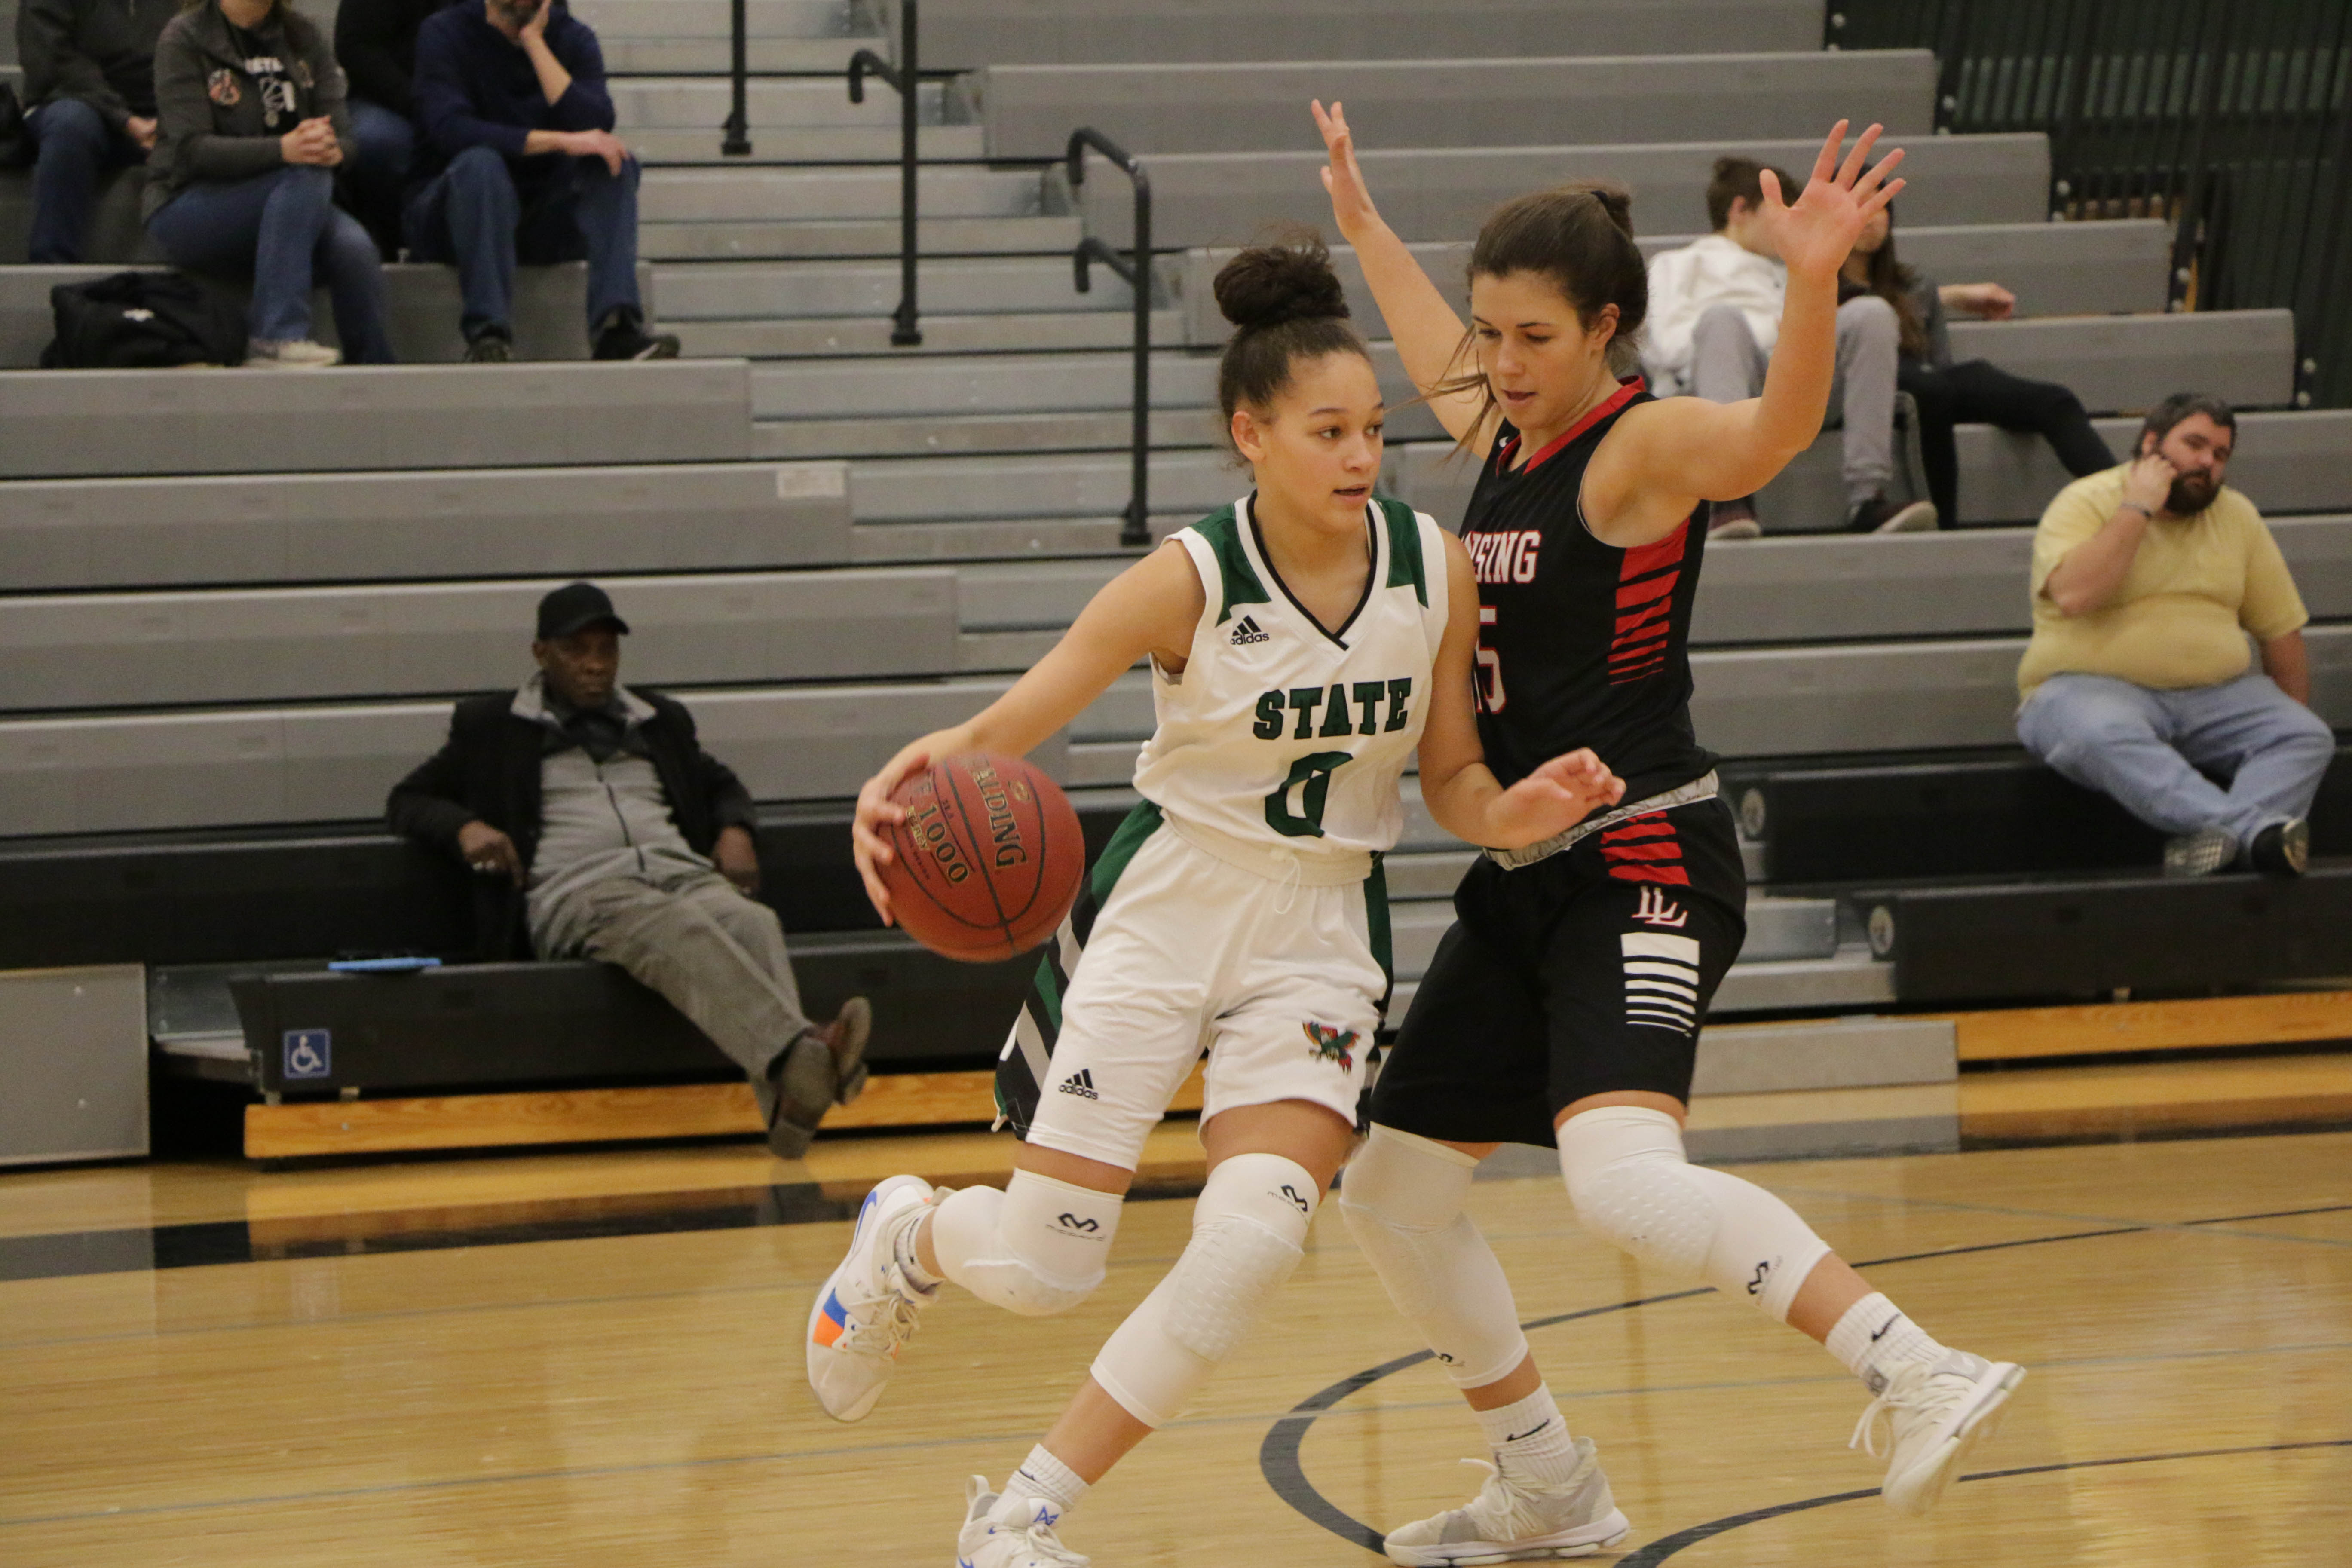 791d8364d78 FSHS girls hold off Lansing, Free State boys earn easy win   News, Sports,  Jobs - Lawrence Journal-World: news, information, headlines and events in  ...